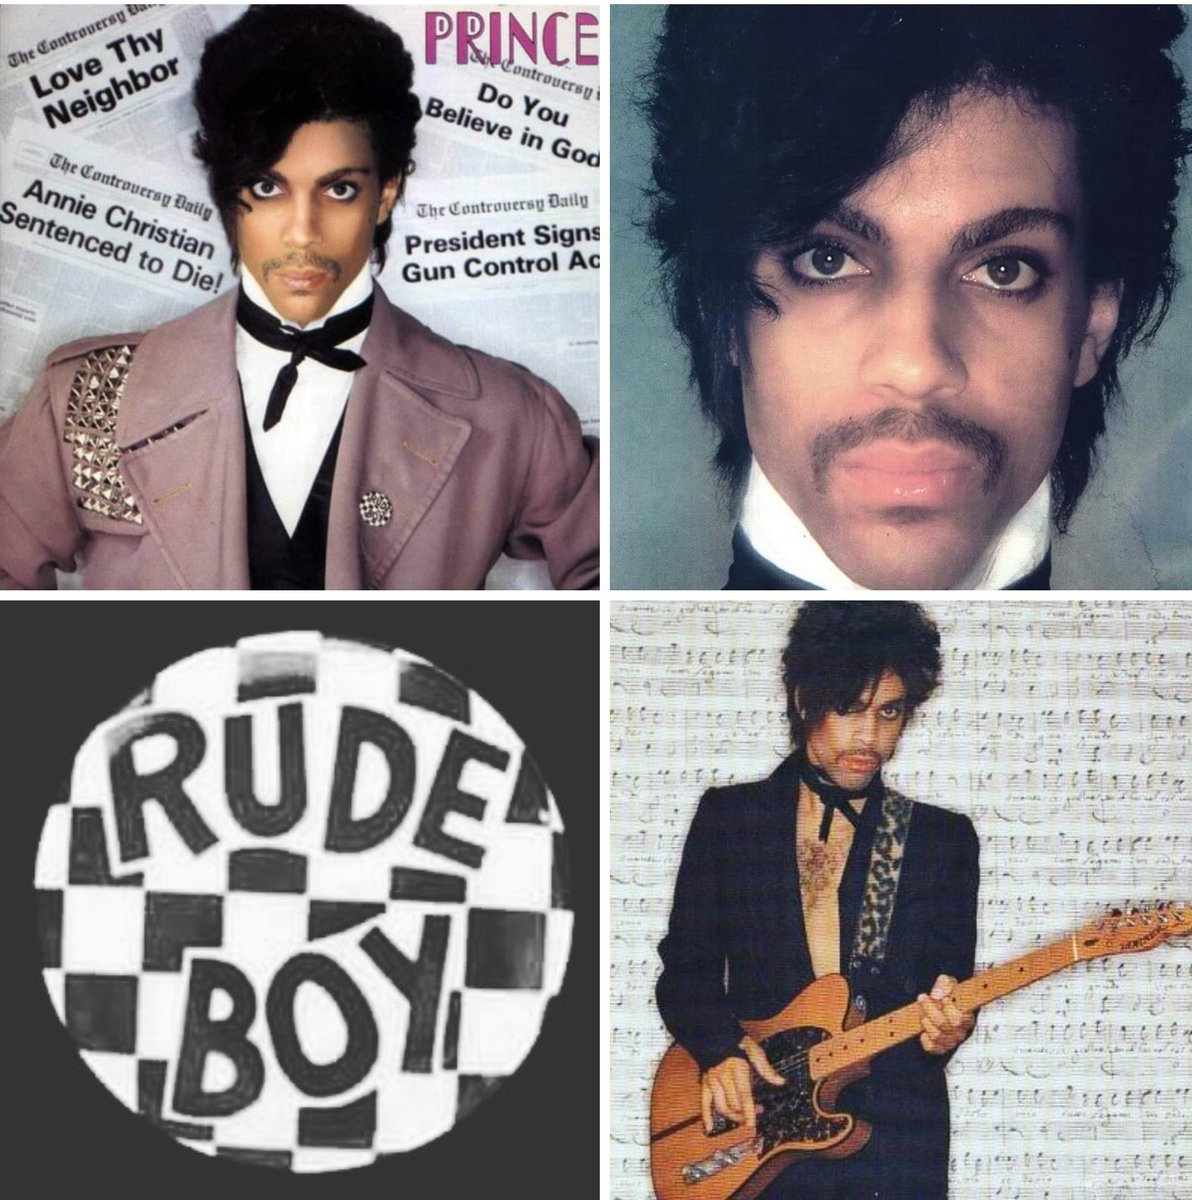 Good Morning  Starting my day with little Controversy   Have a great day everyone  #Prince4Ever #MondayMorning<br>http://pic.twitter.com/8mLqDugN73